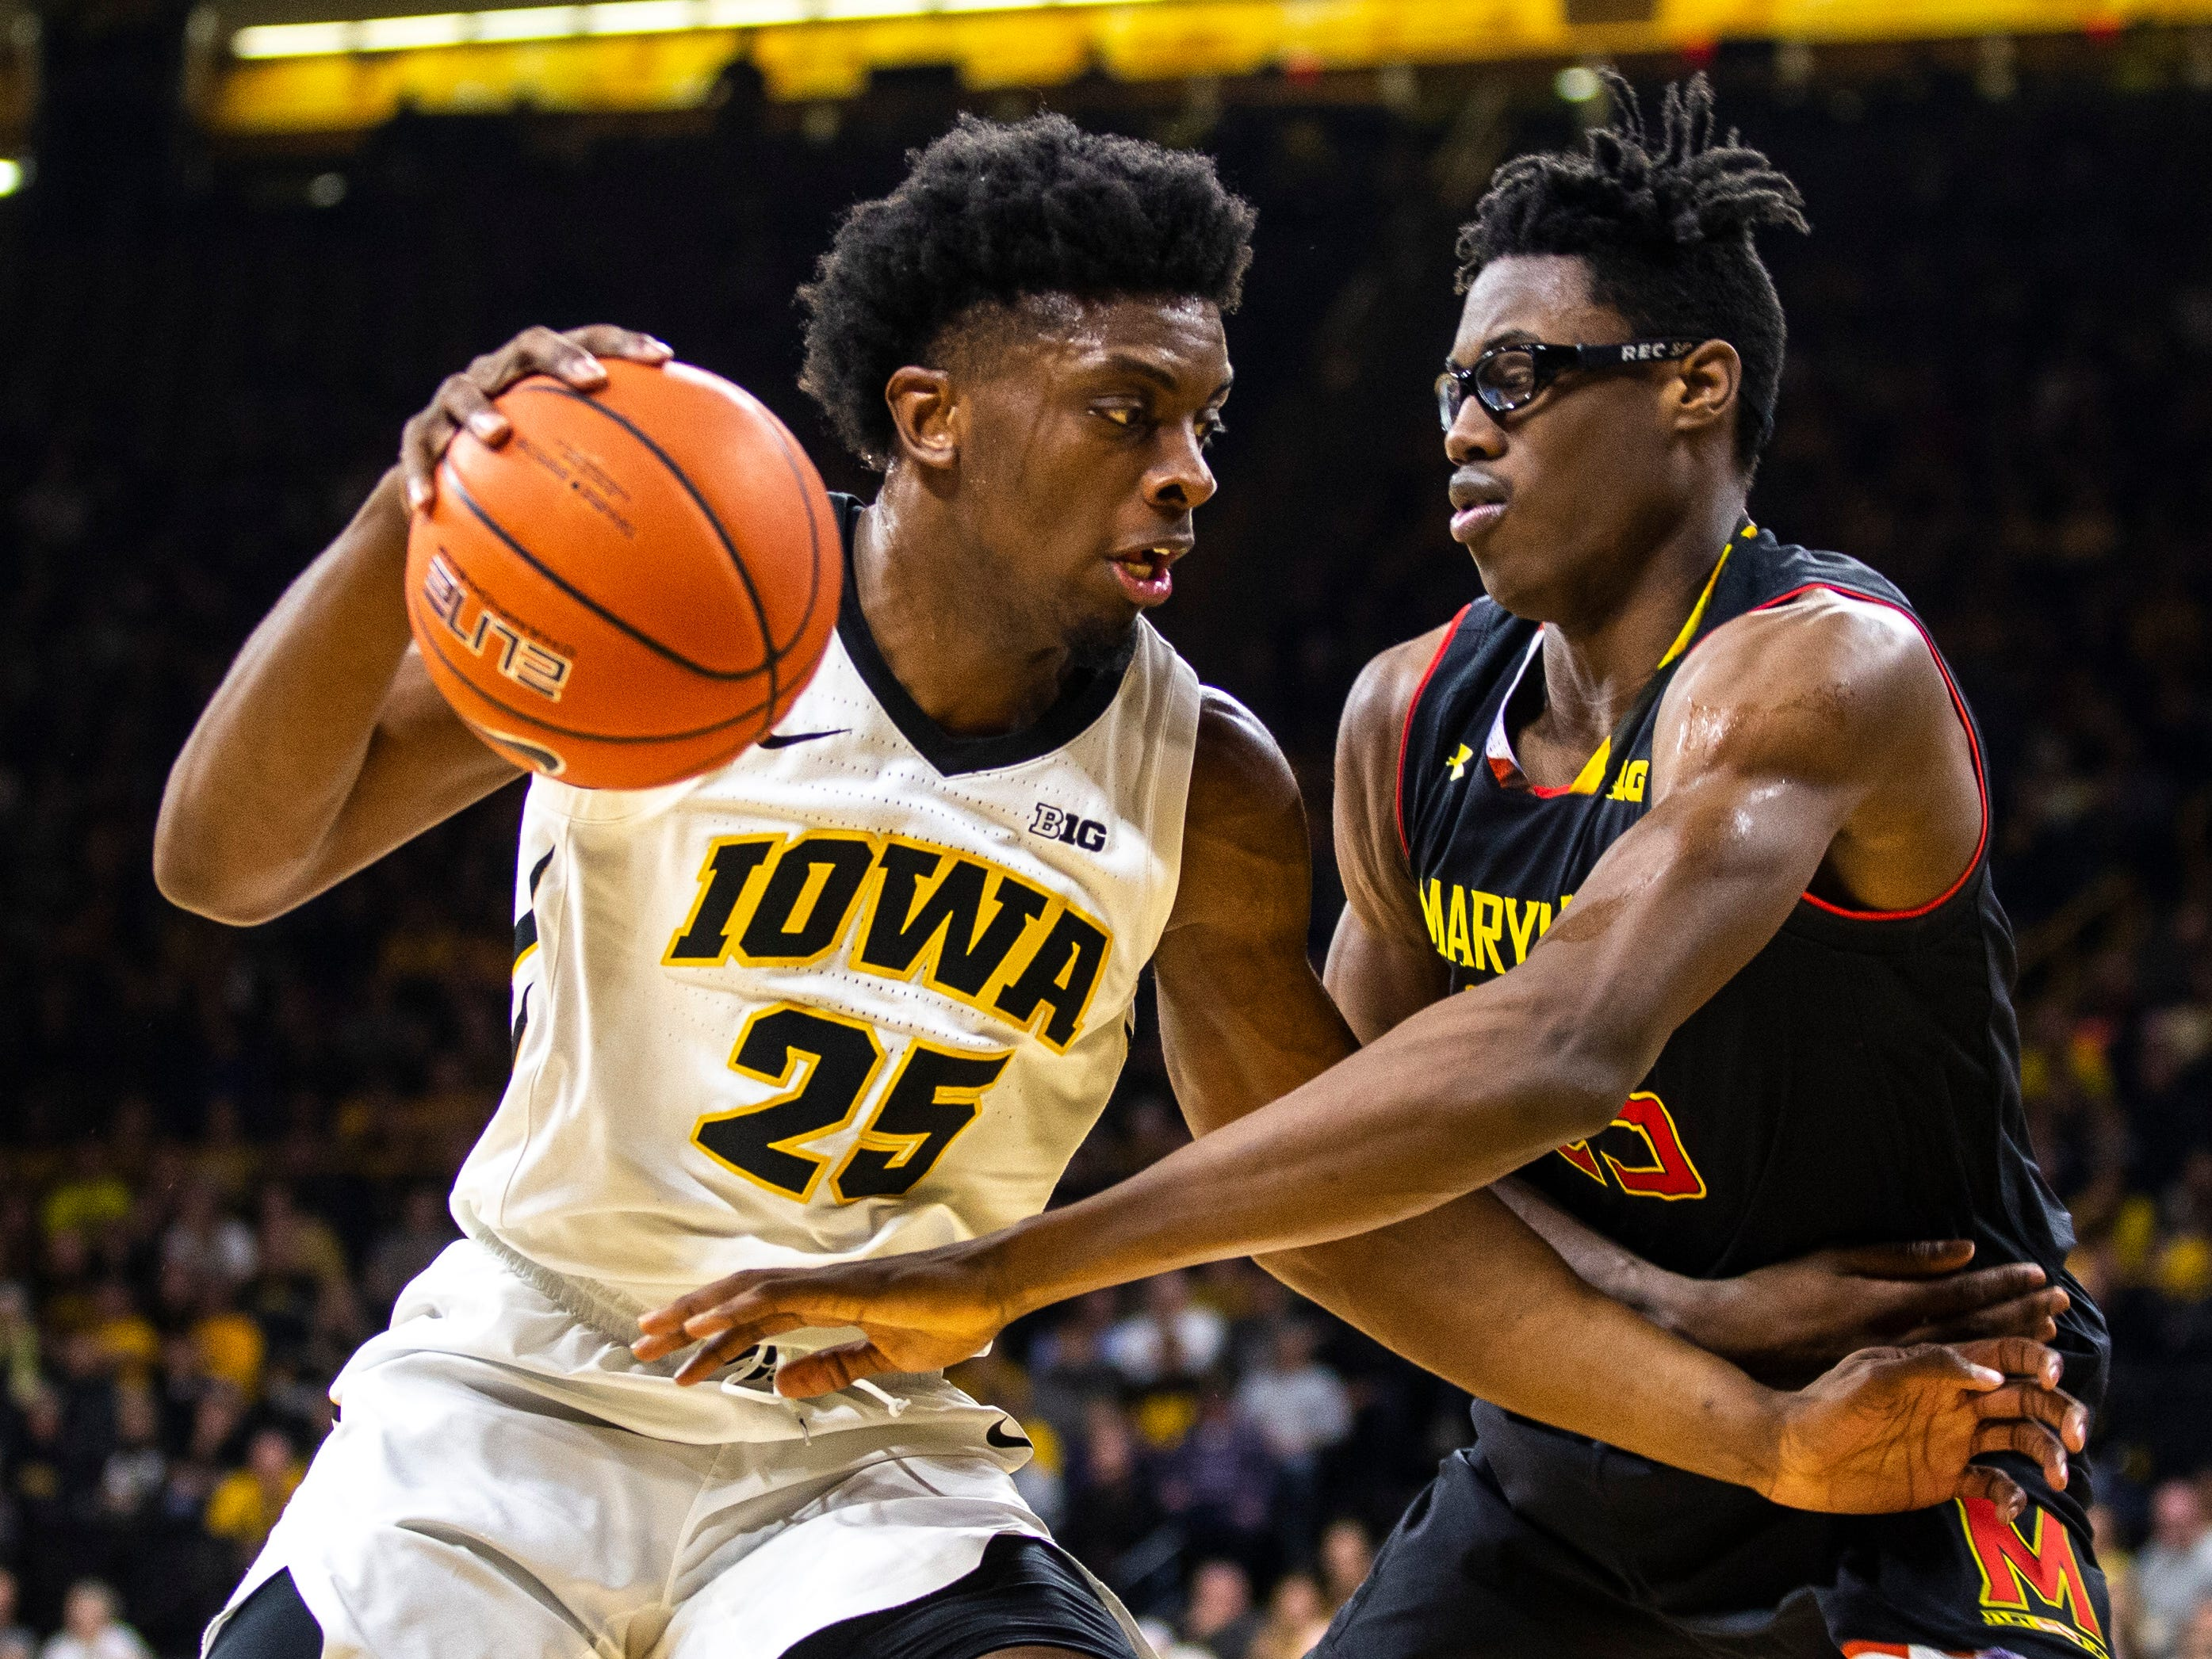 Iowa forward Tyler Cook (25) drives to the basket while Maryland forward Jalen Smith, right, defends during a NCAA Big Ten Conference men's basketball game on Tuesday, Feb. 19, 2019 at Carver-Hawkeye Arena in Iowa City, Iowa.